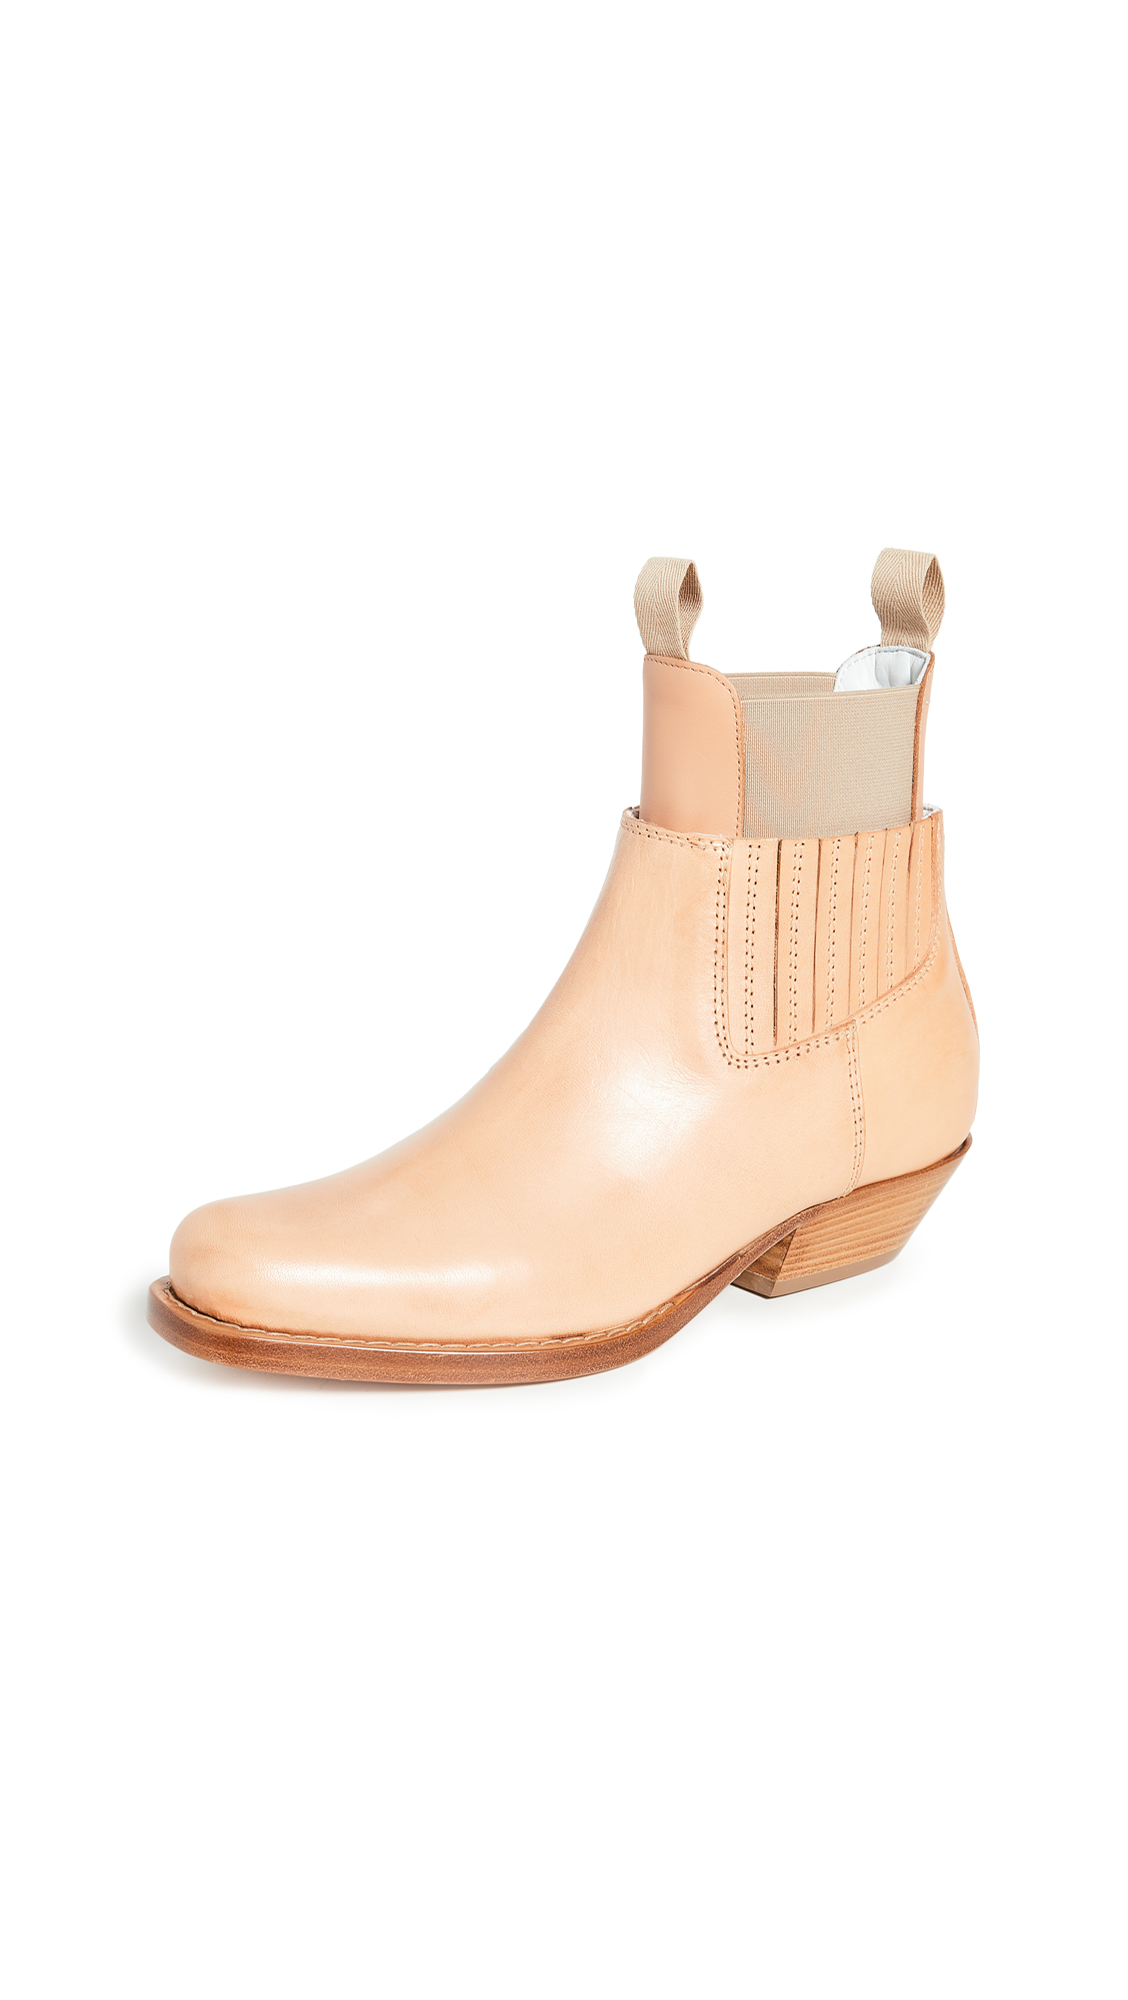 MM6 Maison Margiela Layered Booties – 60% Off Sale